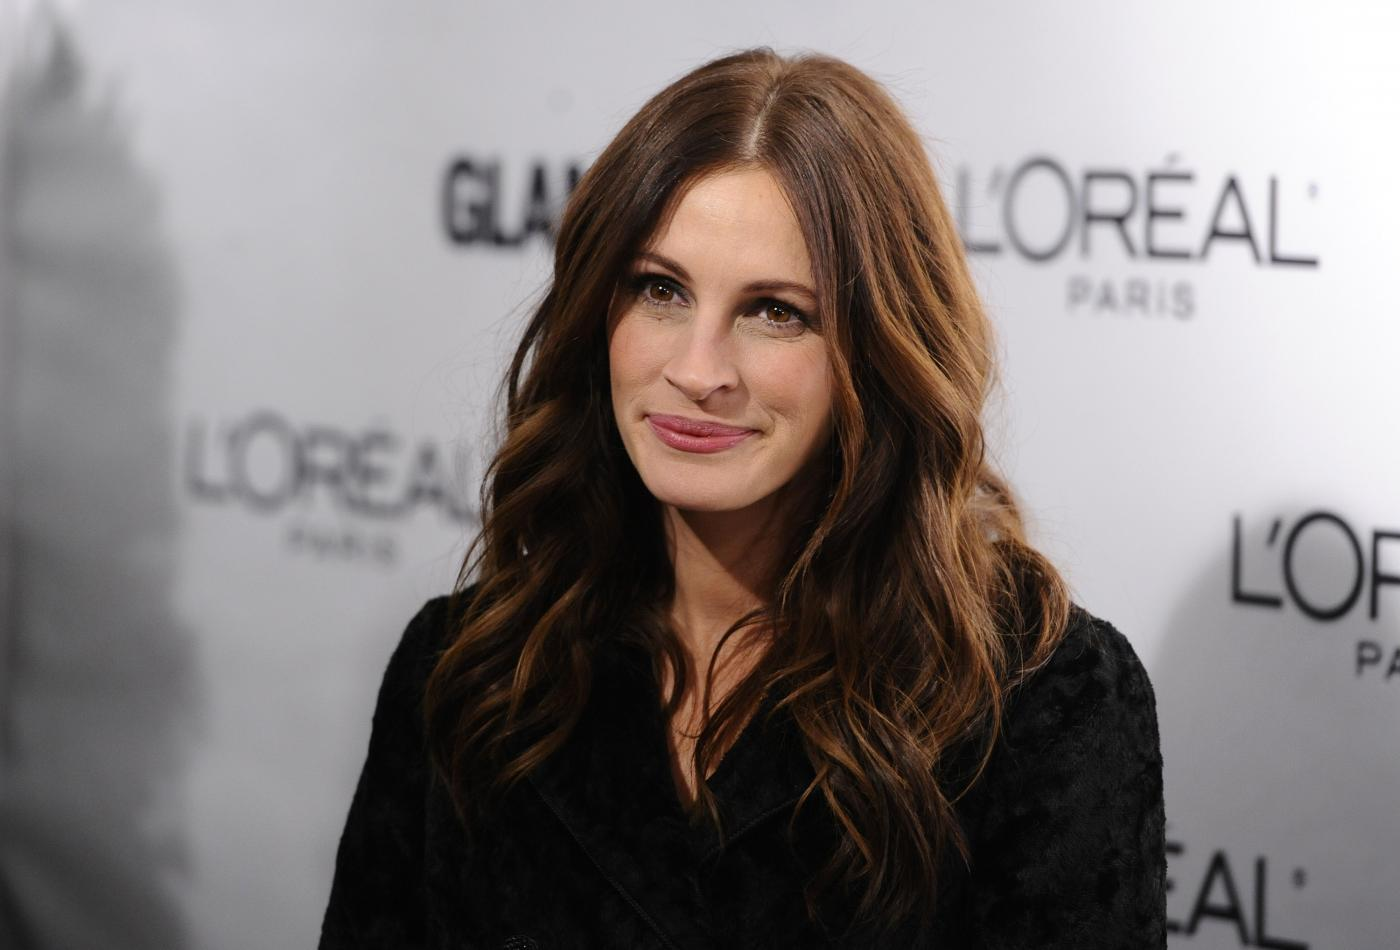 Julia Roberts was injured on the set of Snow White: Revenge of the Gnomes 03/27/2012 25